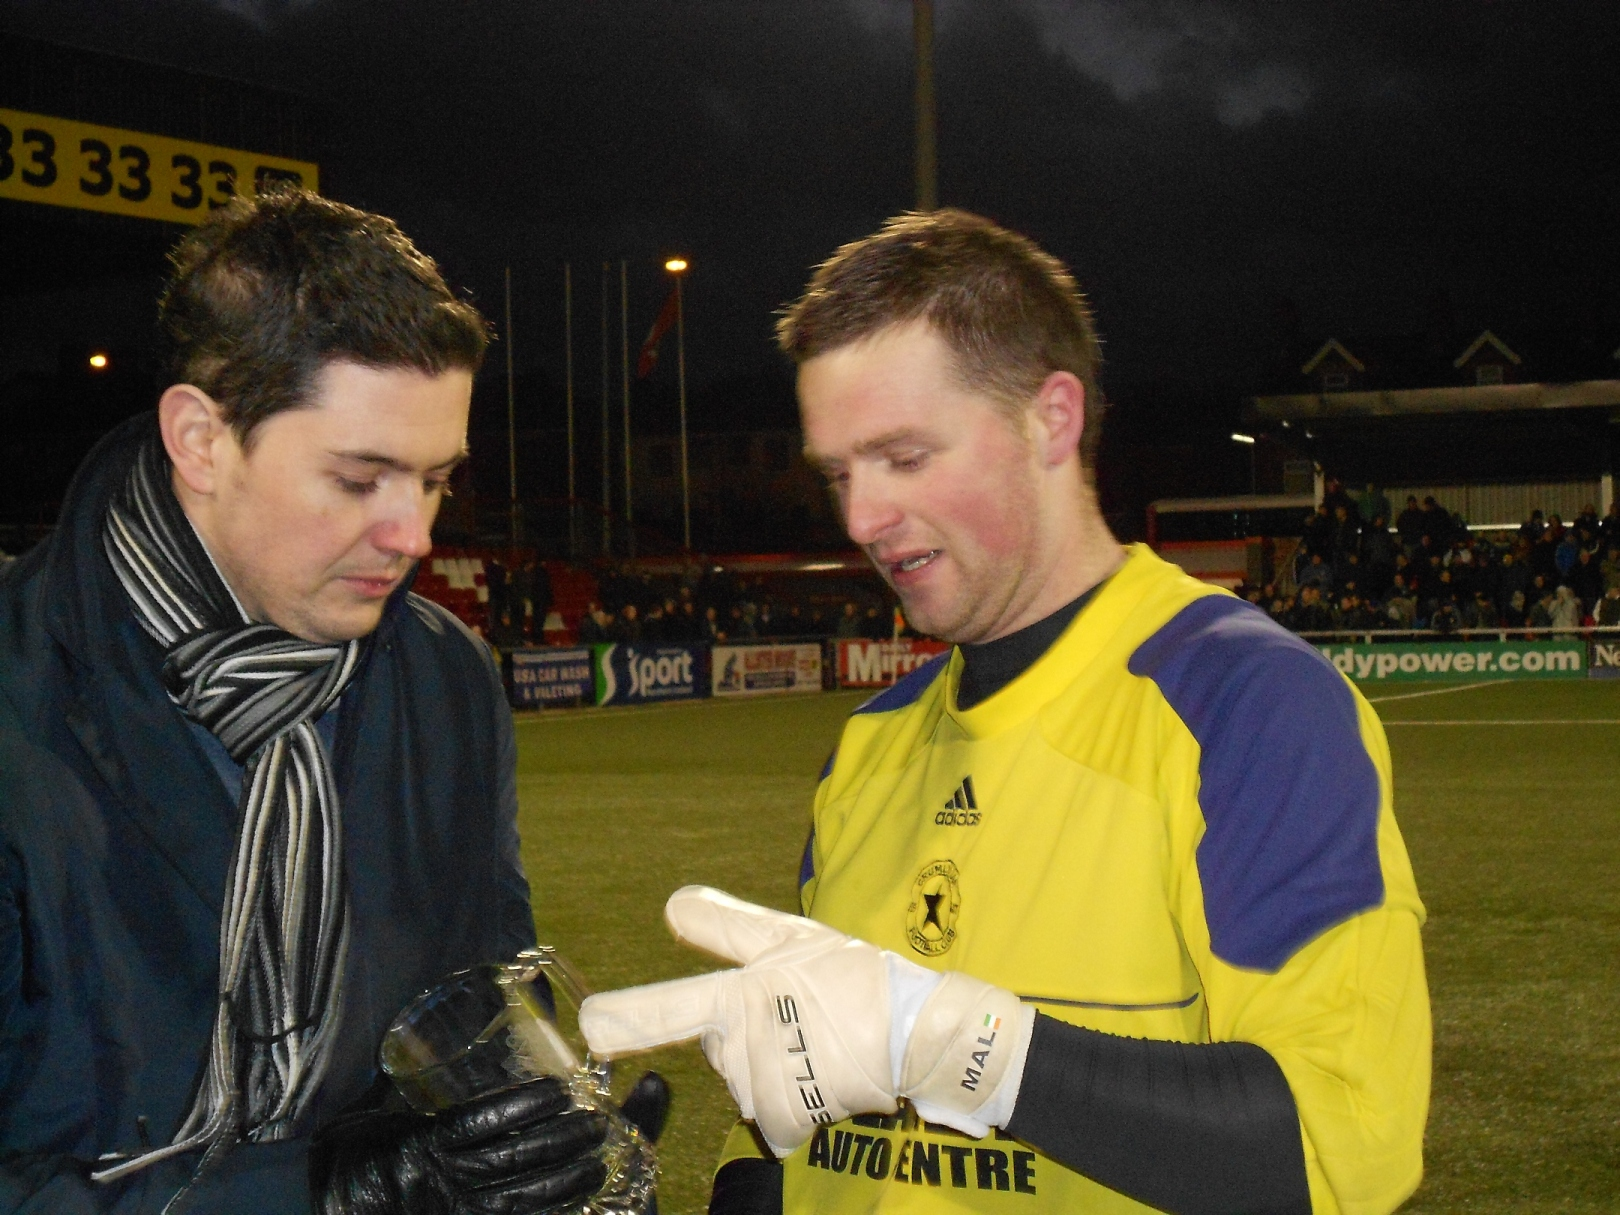 Mark Whyte (Daily Mirror) hands over Man of the Match award to the Crumlin Star Goalkeeper Malachy Thompson.